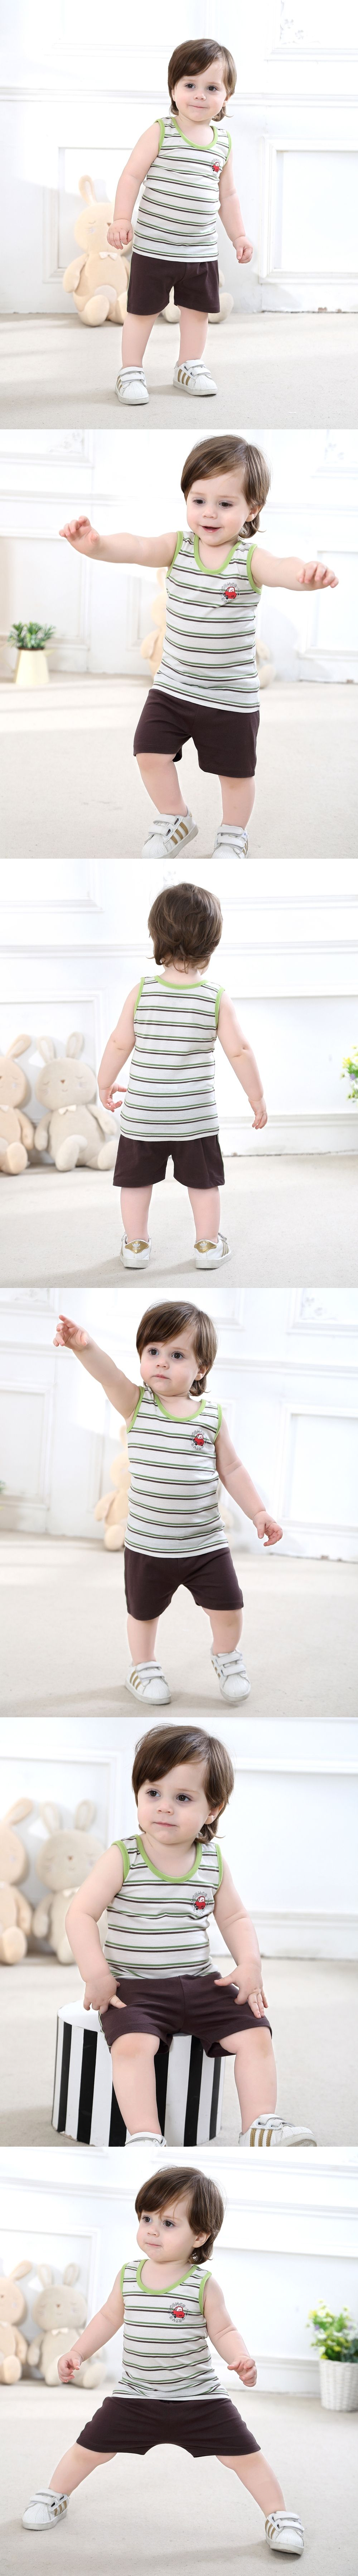 7ba89d8fd Baby Boy Clothing Set 1-3 Years-Old Vest Set Shorts Casual Wear in ...